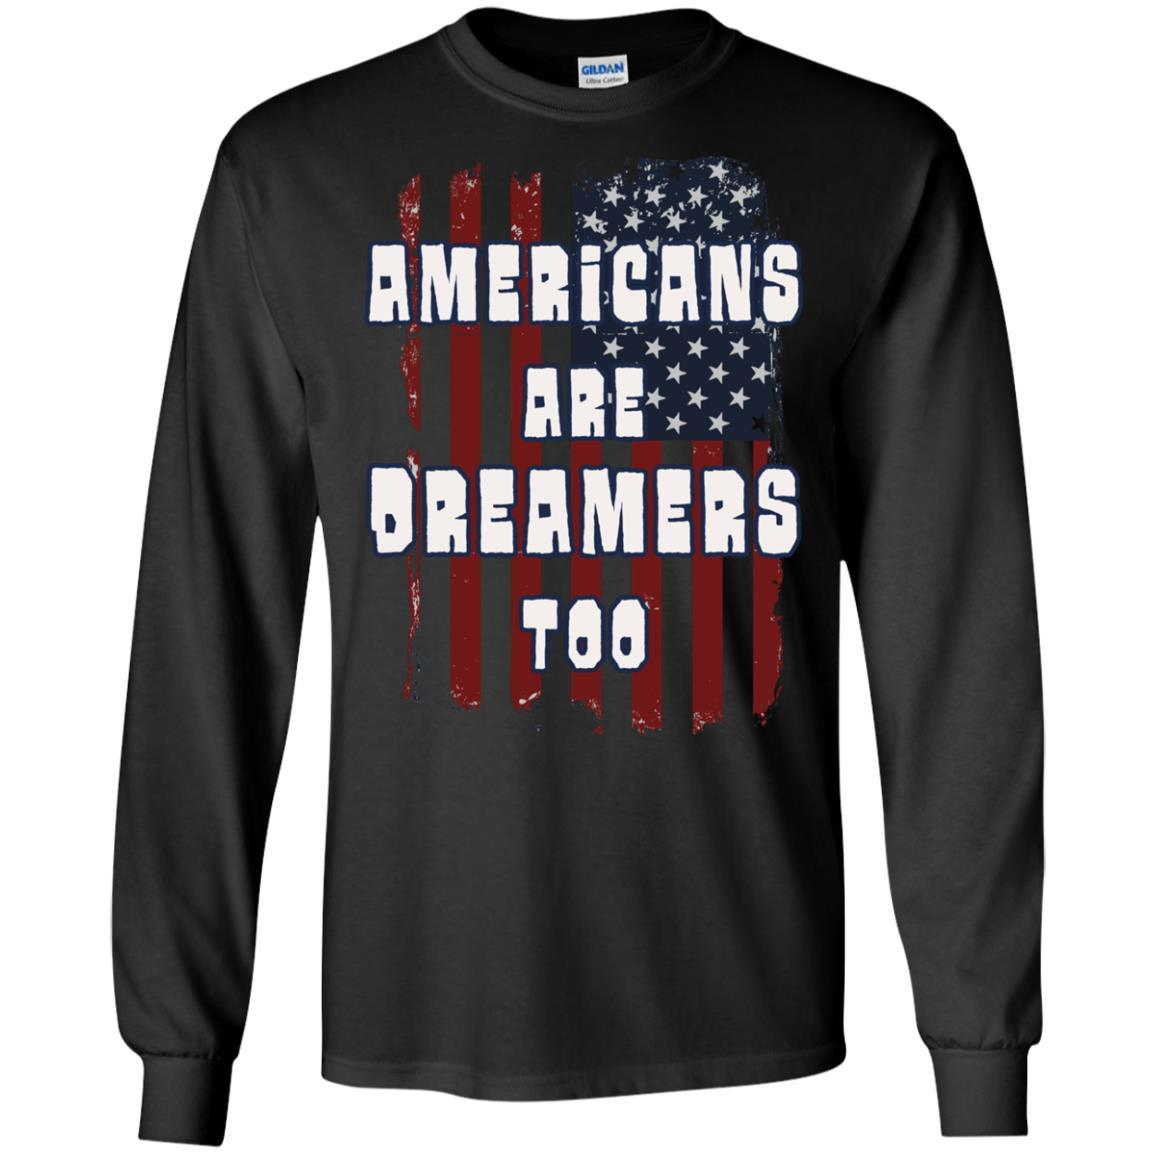 Americans Are Dreamers Too Patriotic Pride T-shirt Long Sleeve 240